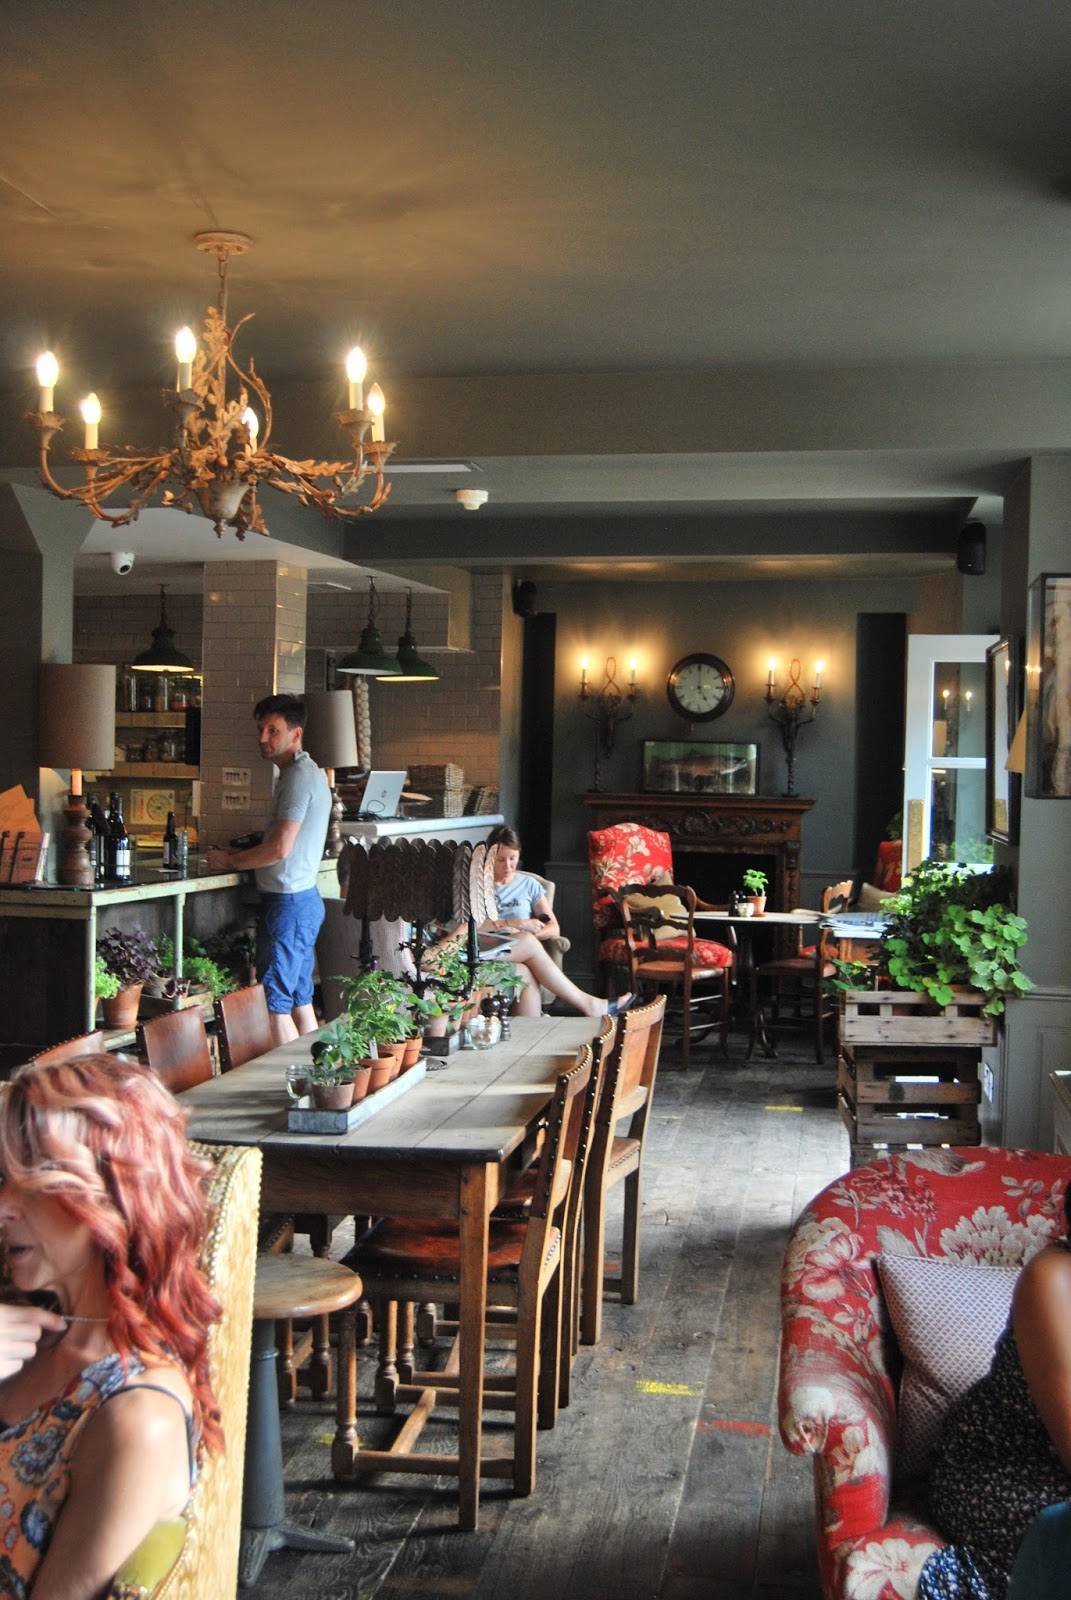 Days Away - Stay and Eat at The Pig in Southampton, photo by modern bric a brac